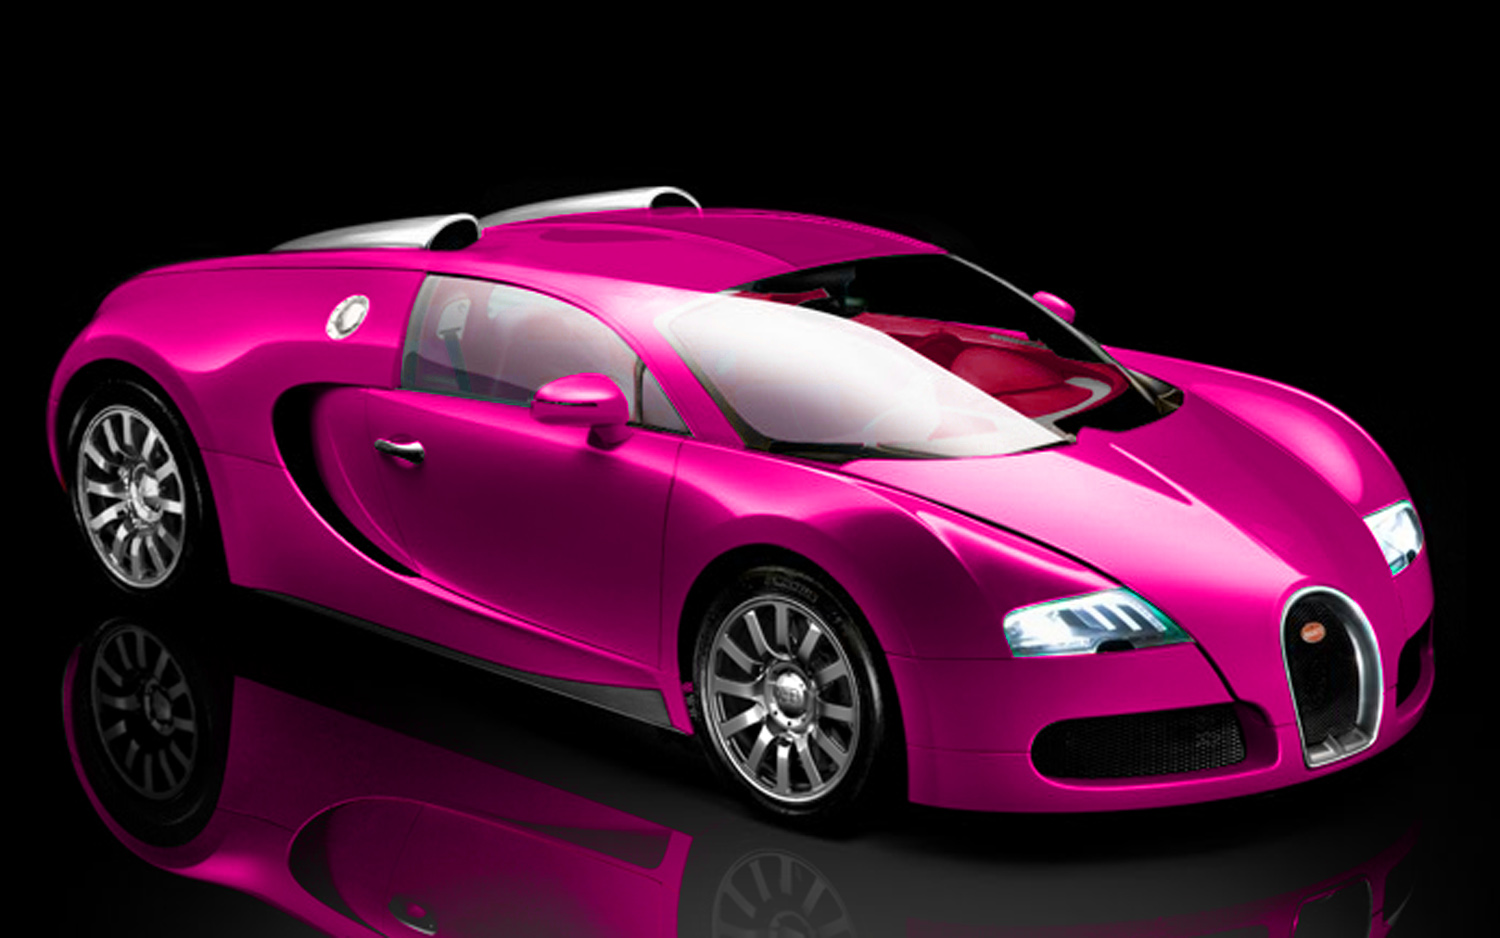 Bugatti Veyron Cost 17 Free Hd Car Wallpaper